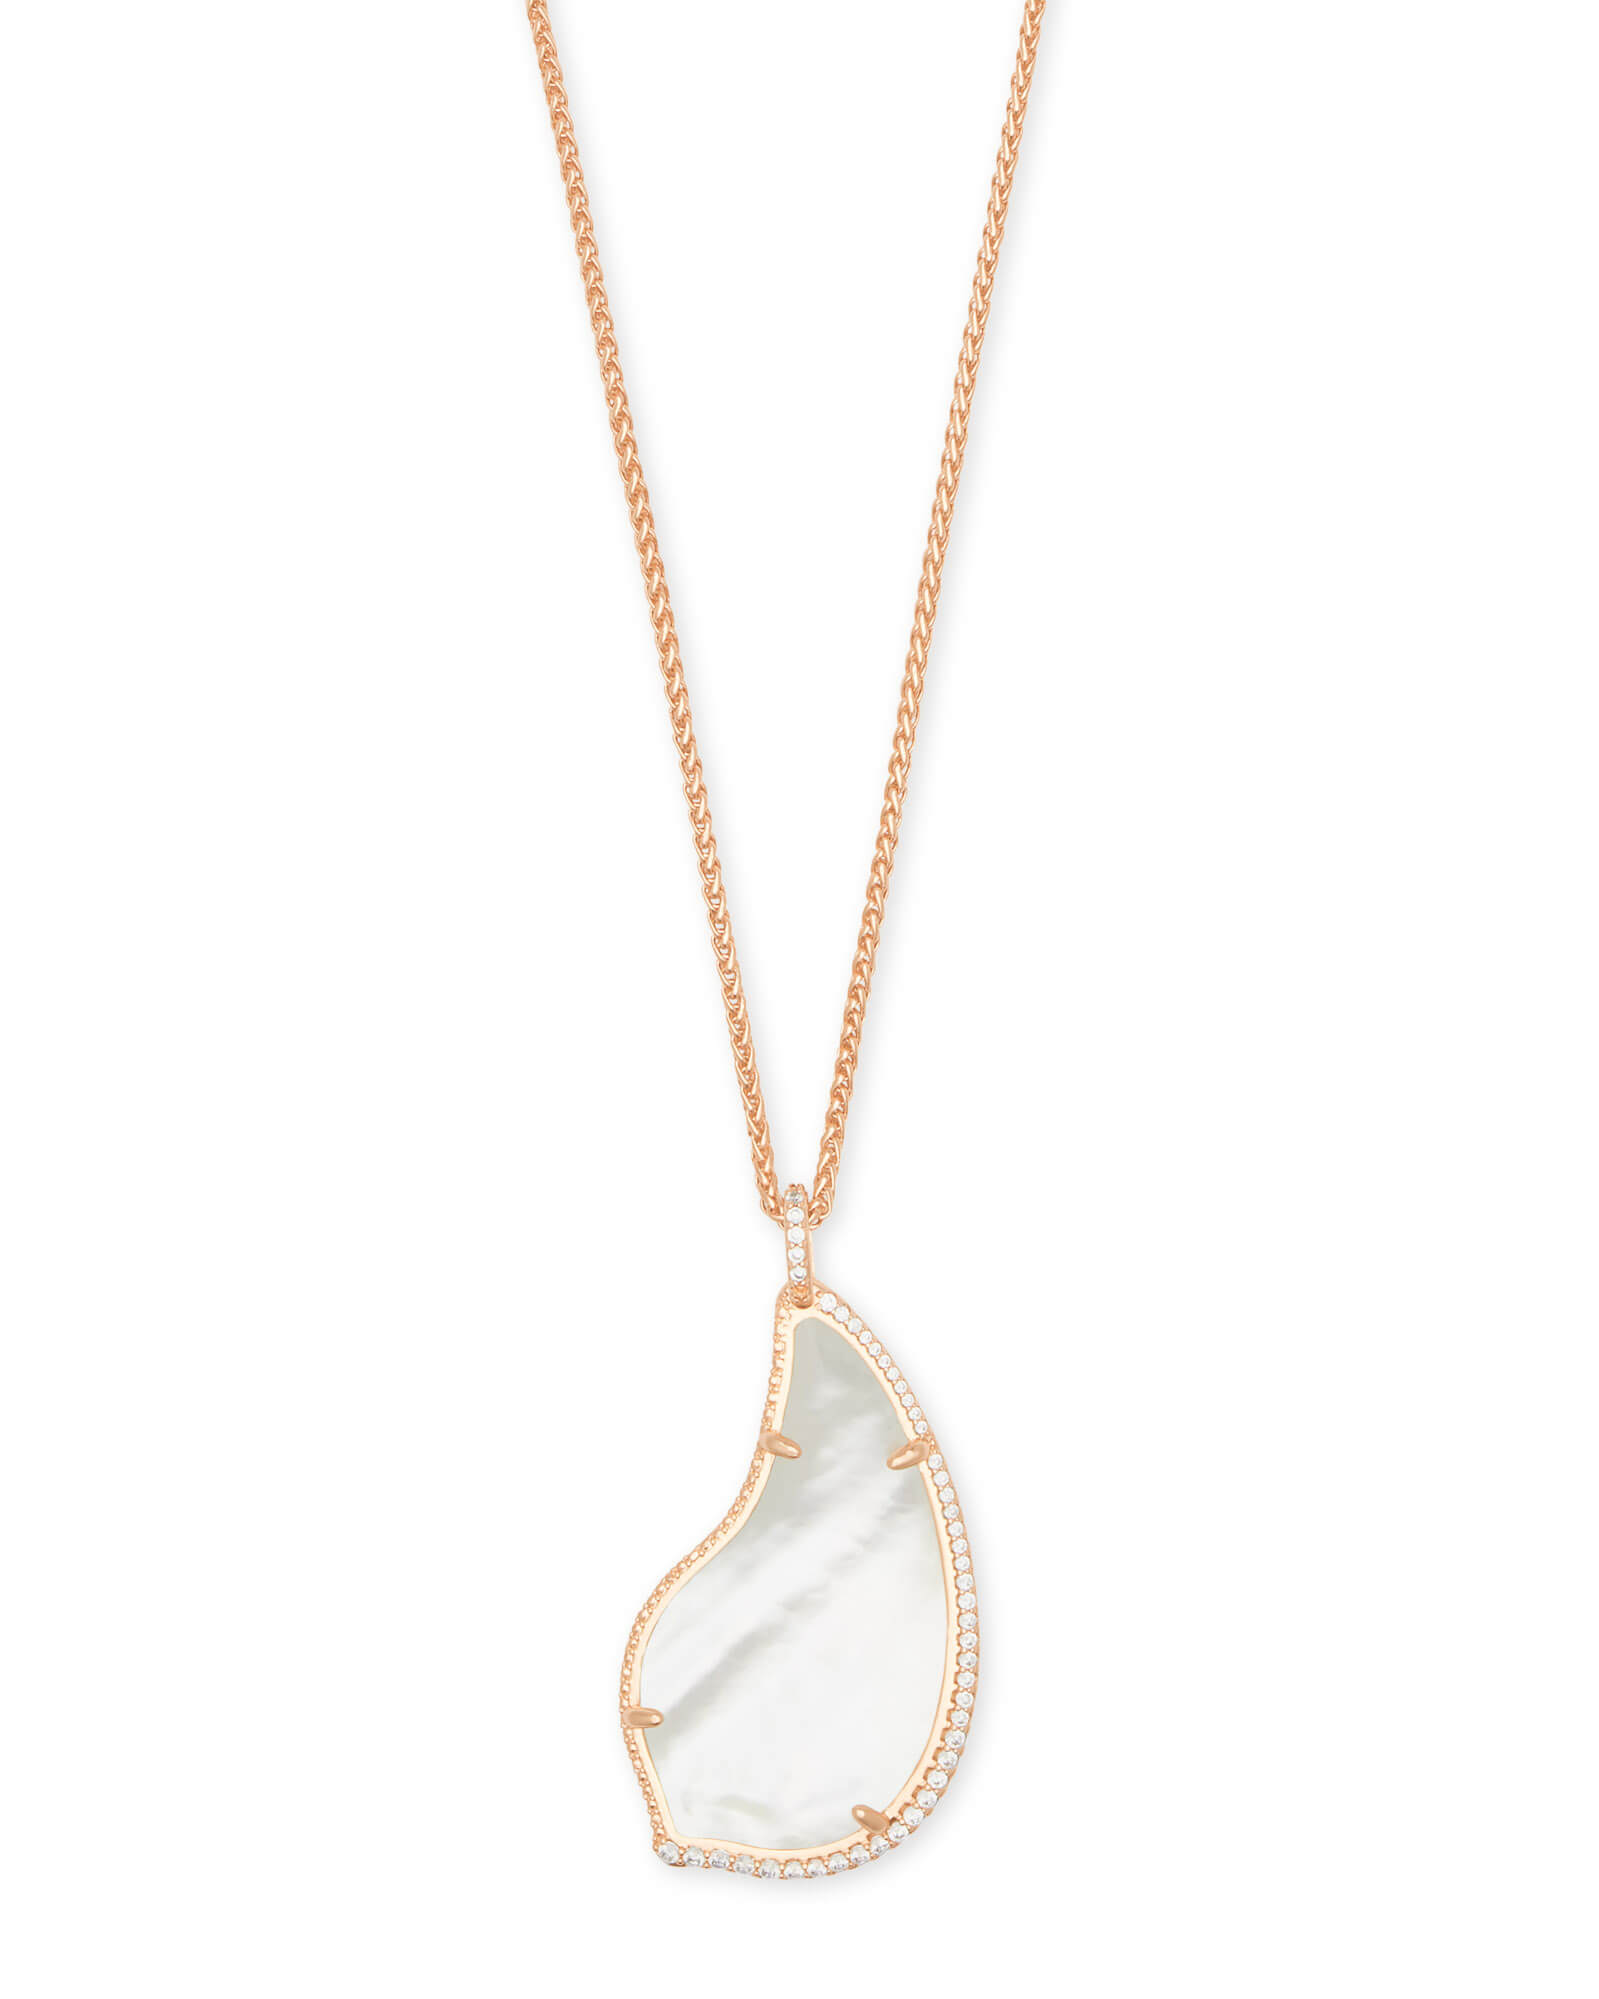 Kendra Scott Theodora Rose Gold Long Pendant Necklace in Mother of Pearl